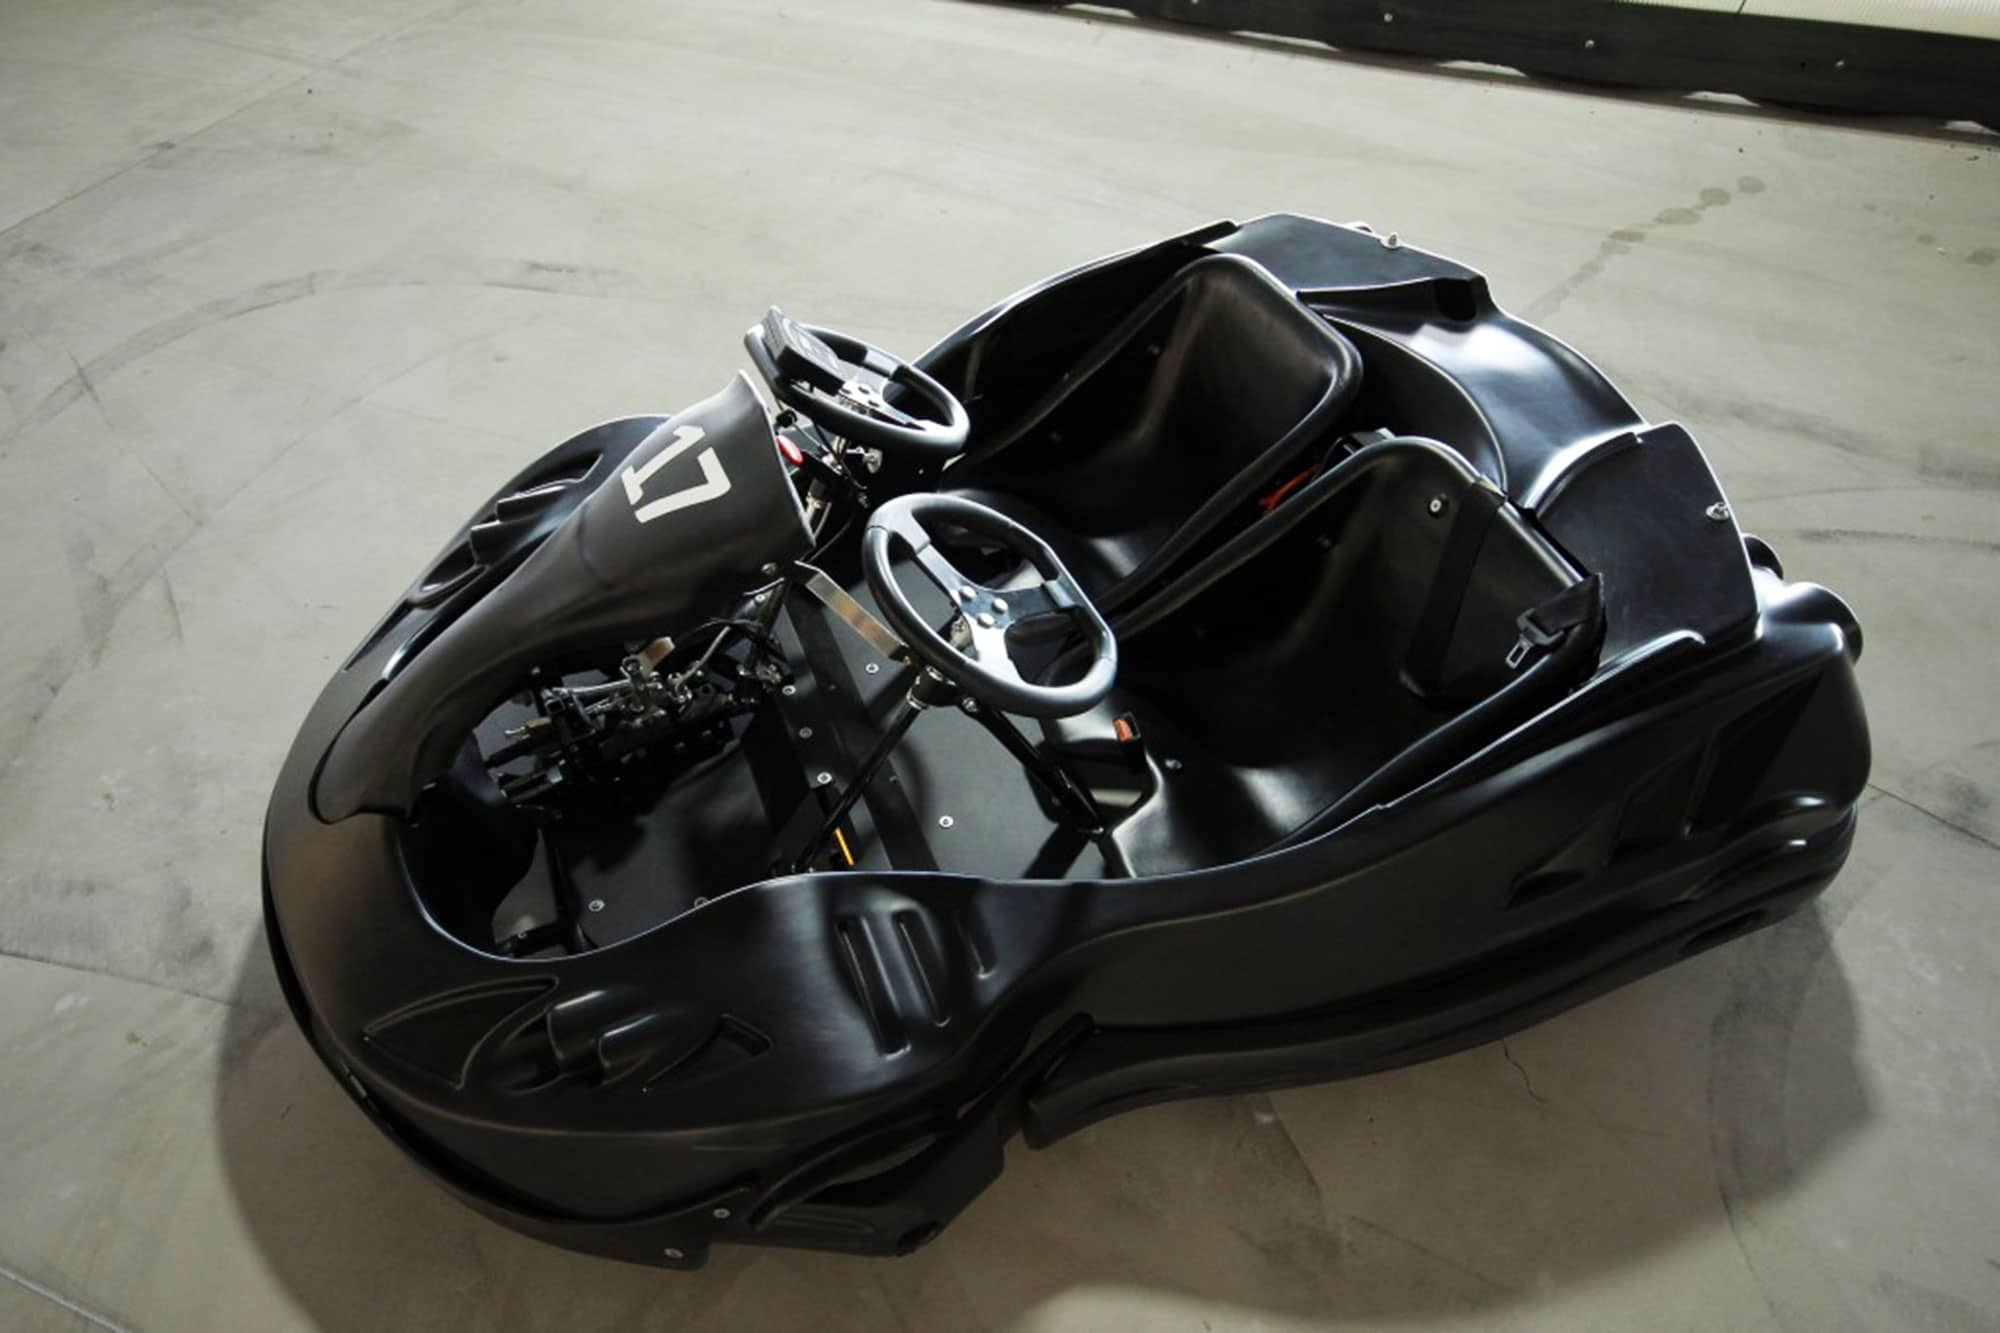 Super fast go kart available to race in Gdansk